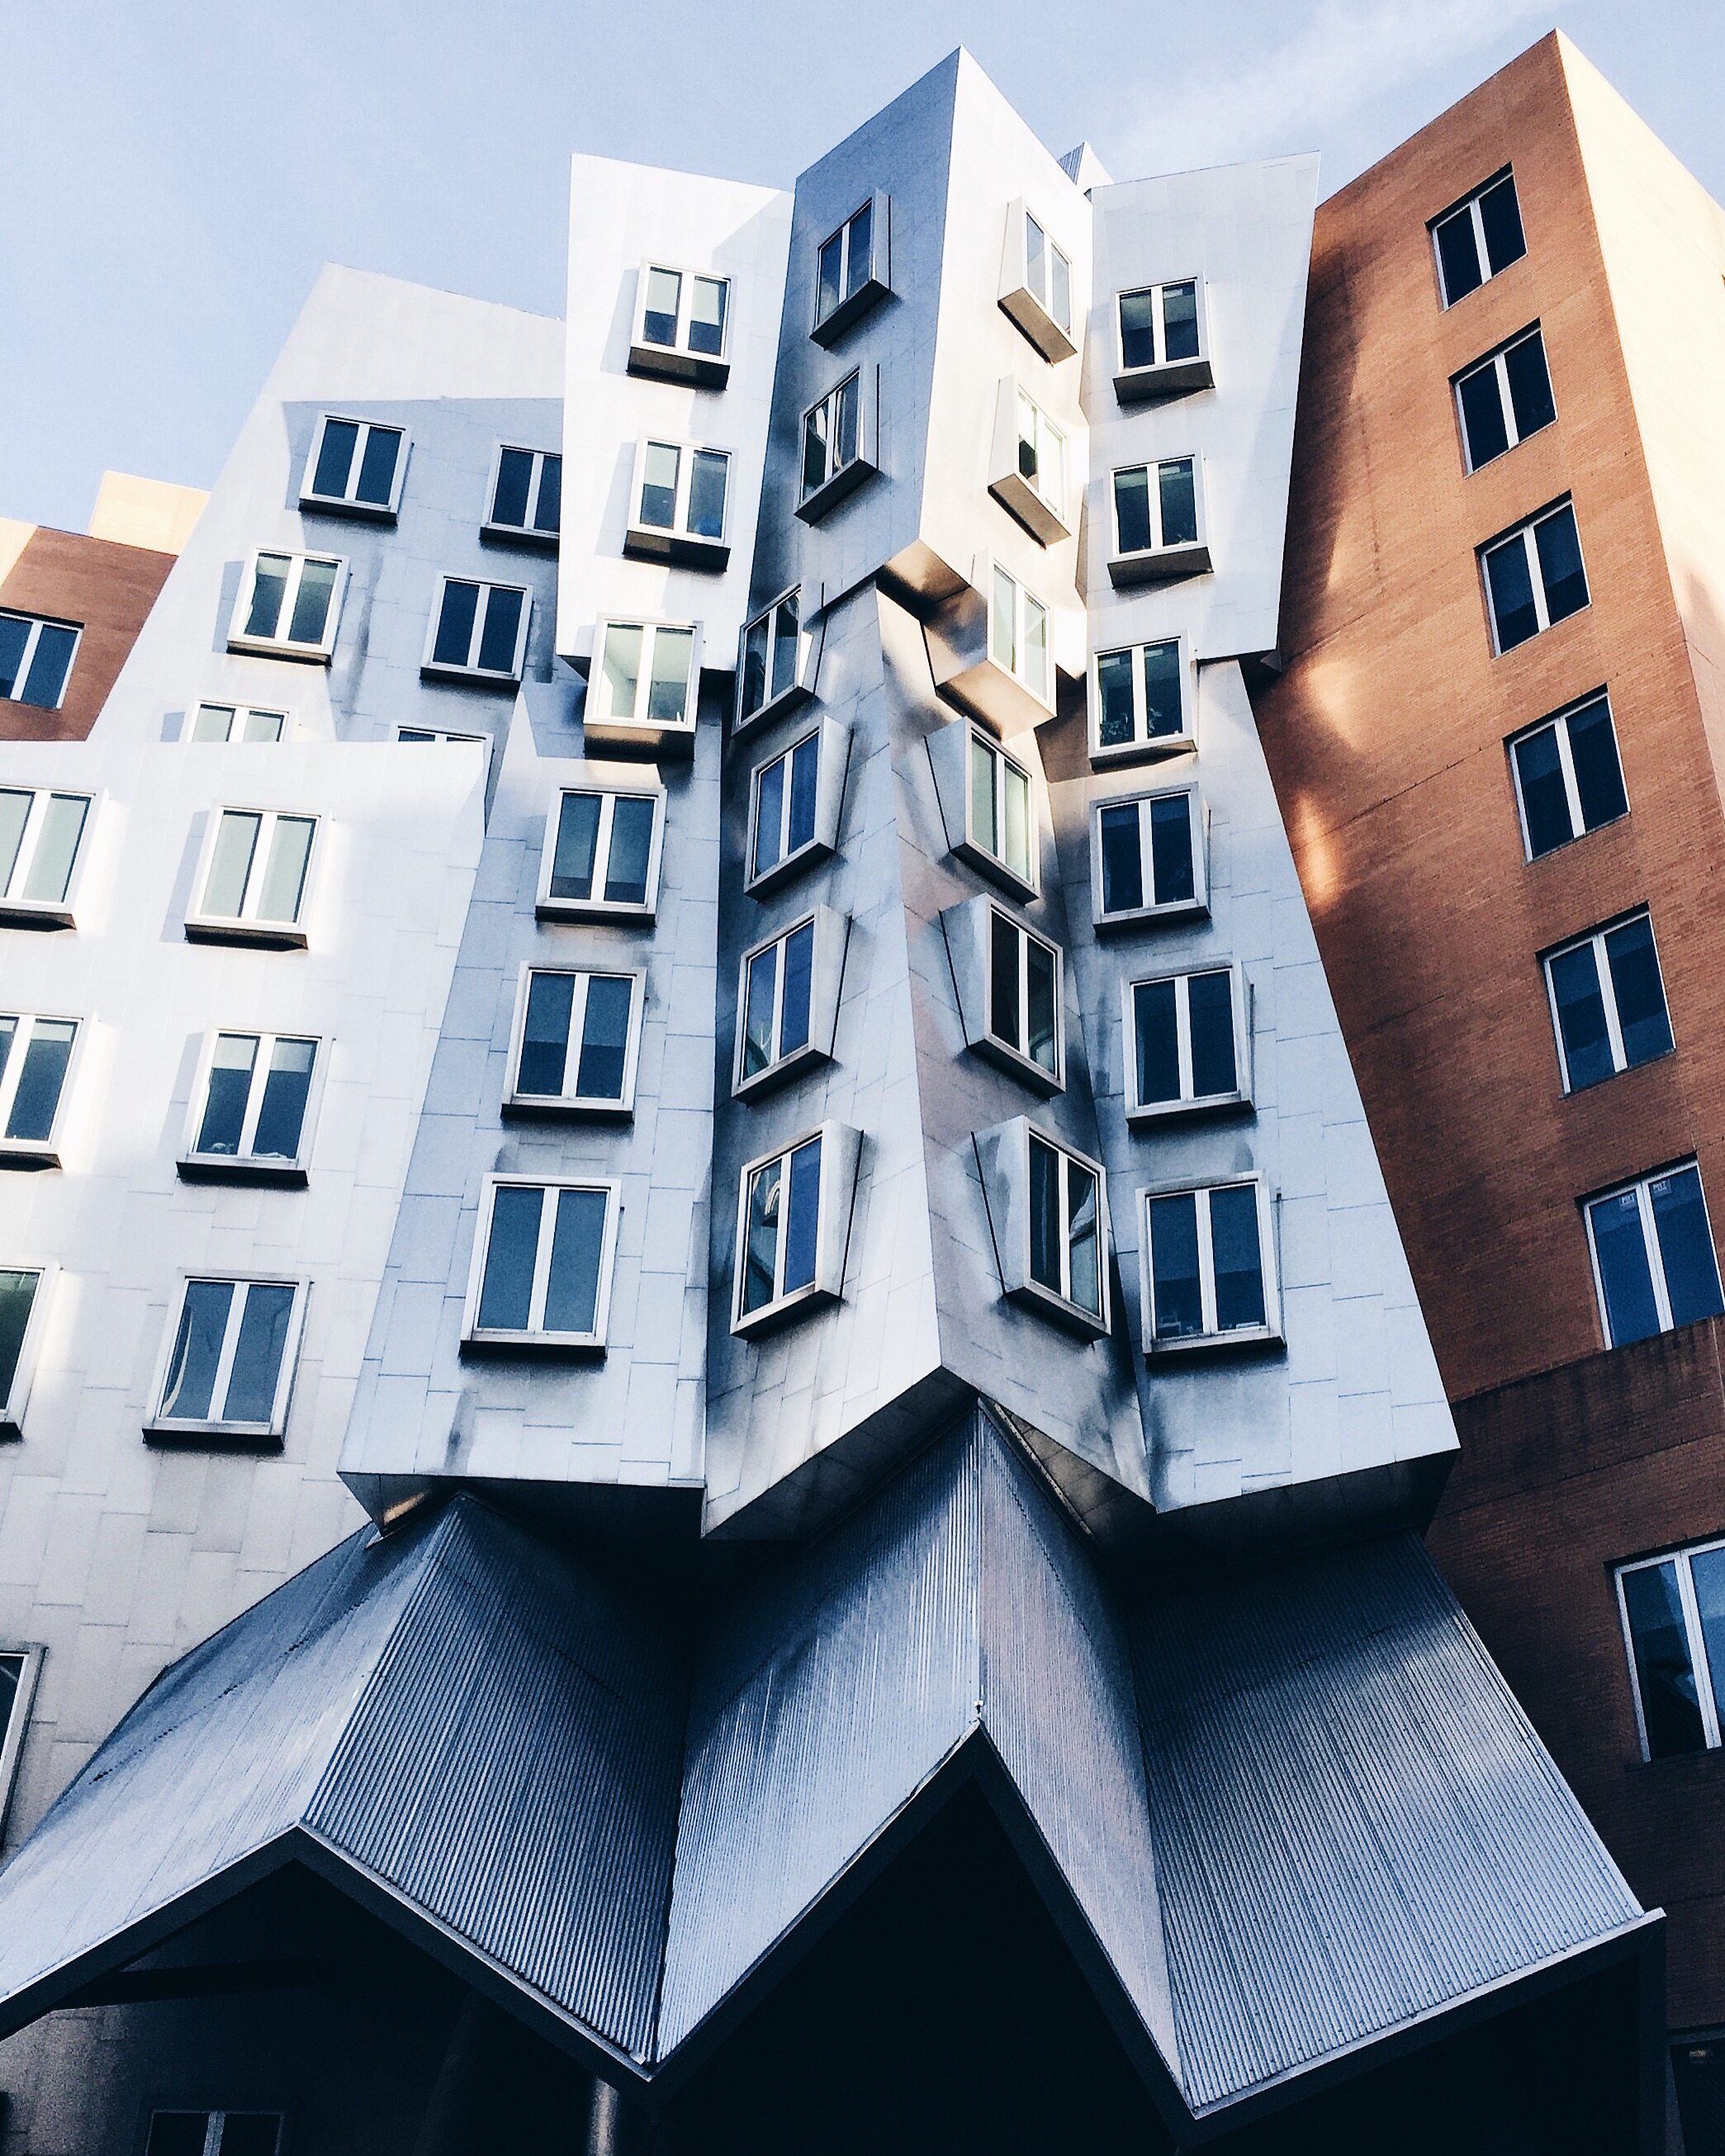 Stata Center by Frank Gehry